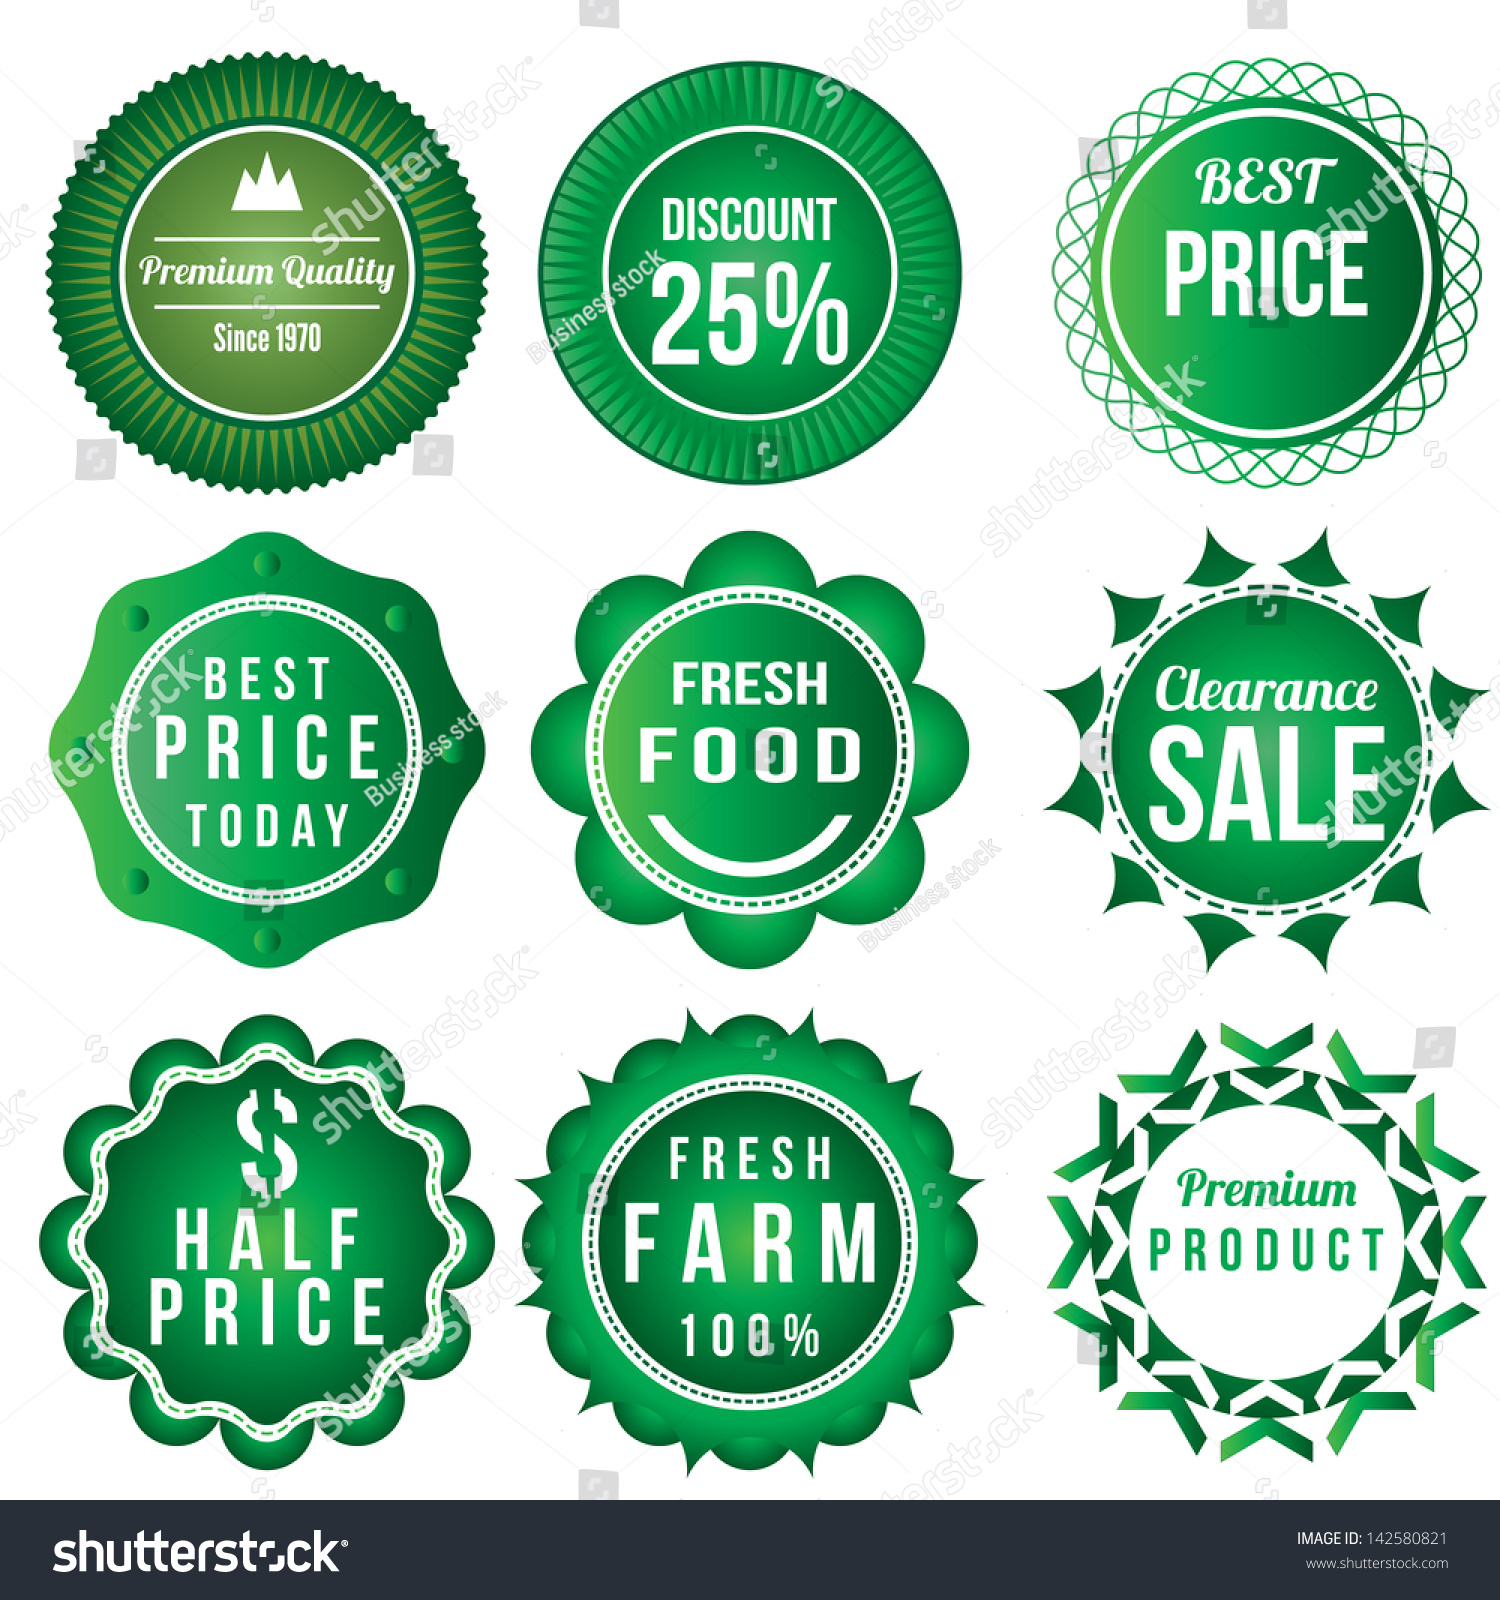 Fresh Food Product Vintage Labels Template Set. Green Theme. Retro Badge  Logo Template Design